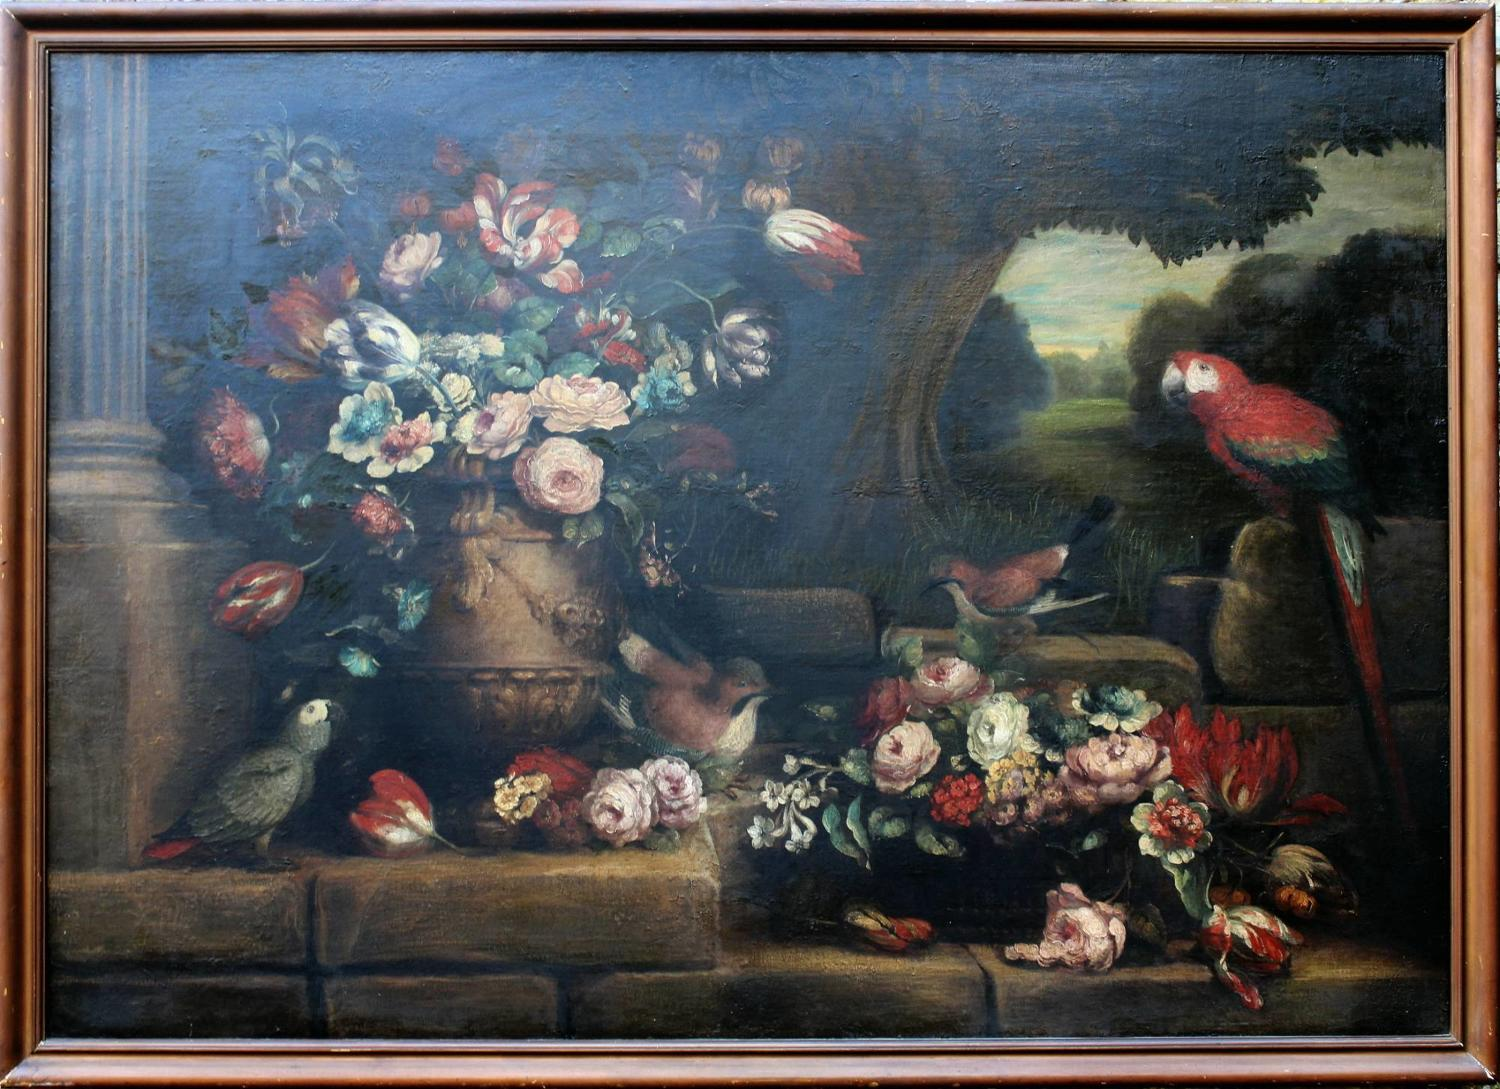 After Peter Casteels, Still life with Parrots, Oil on Canvas